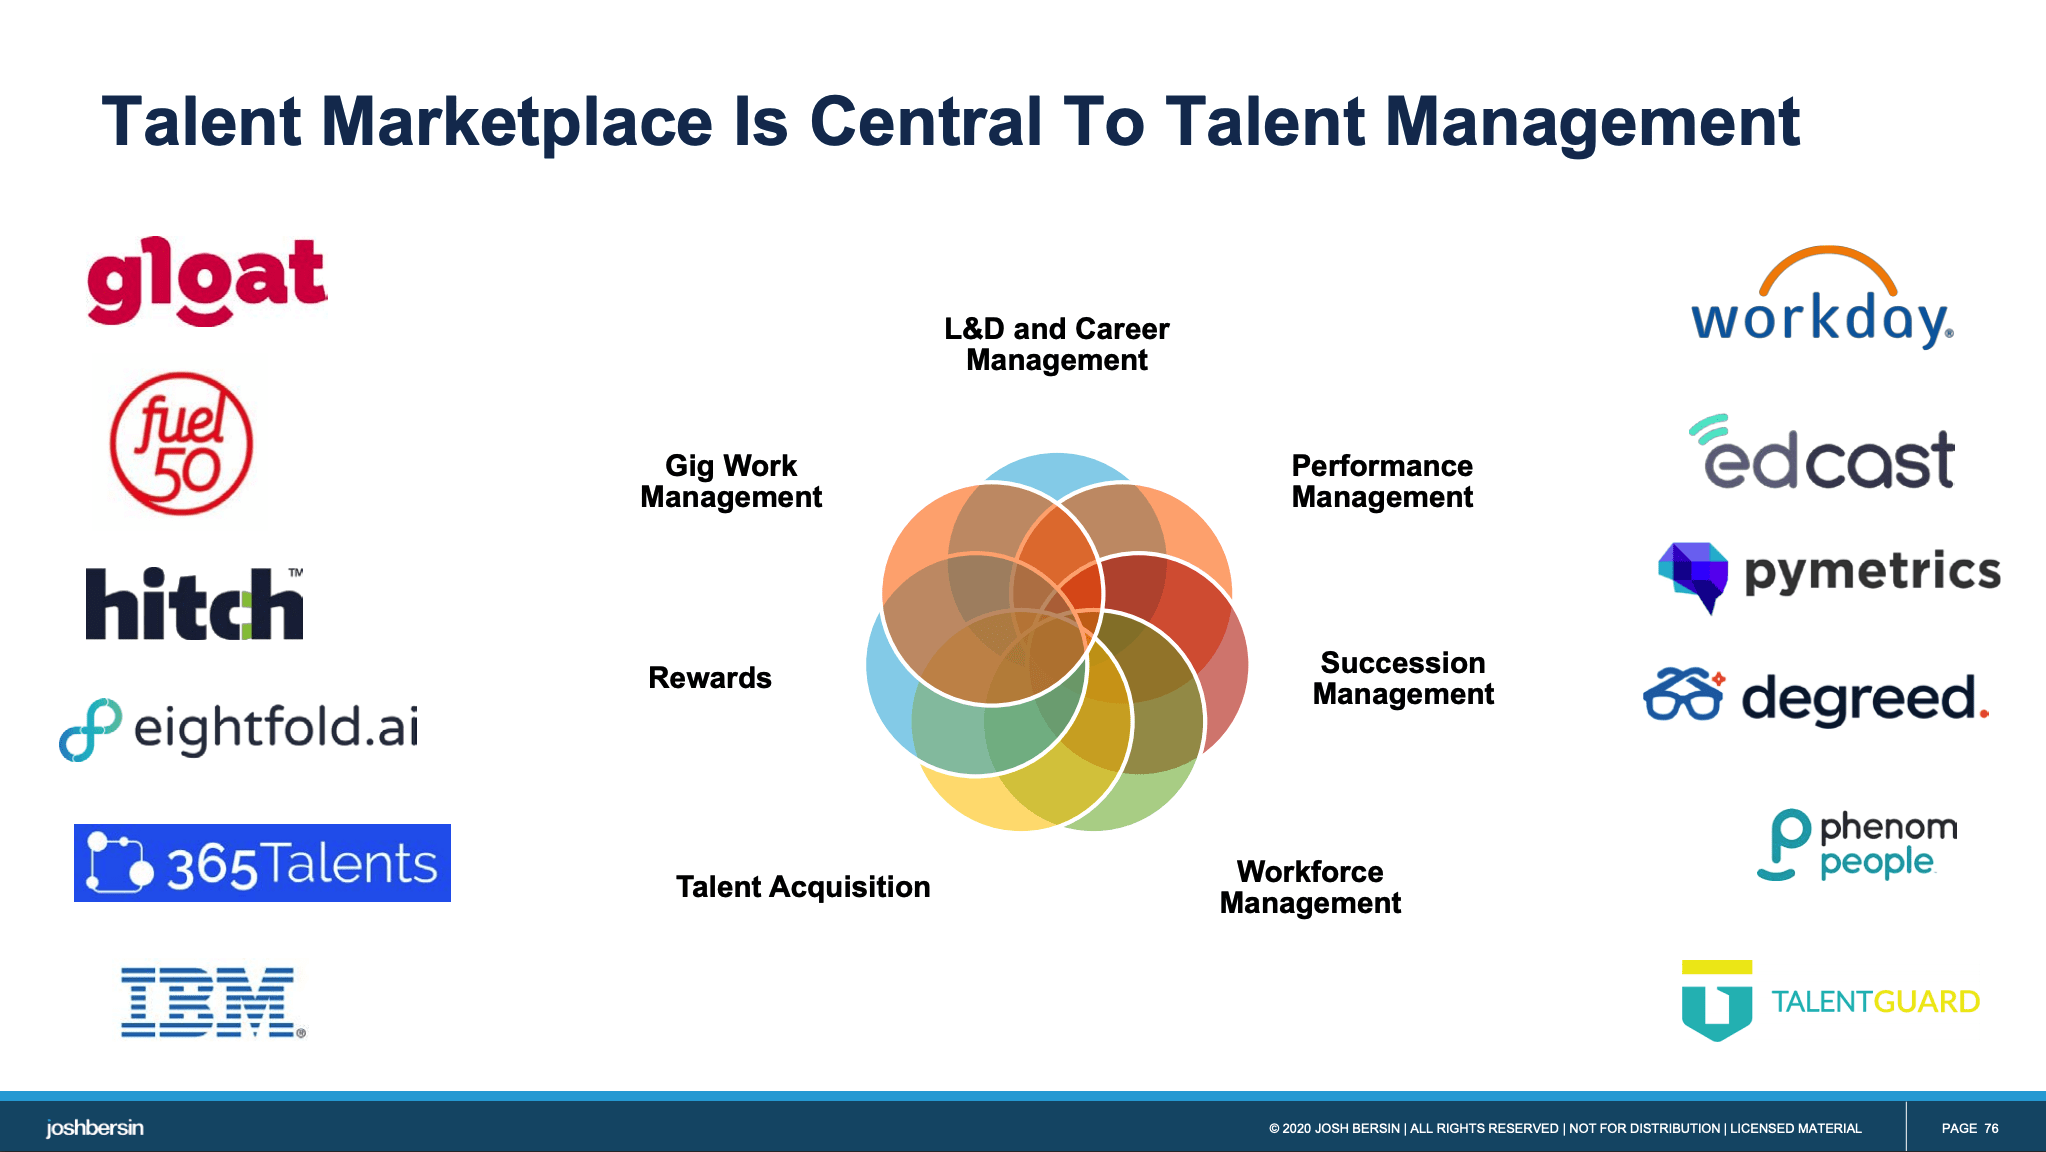 Talent Marketplace is central to talent management